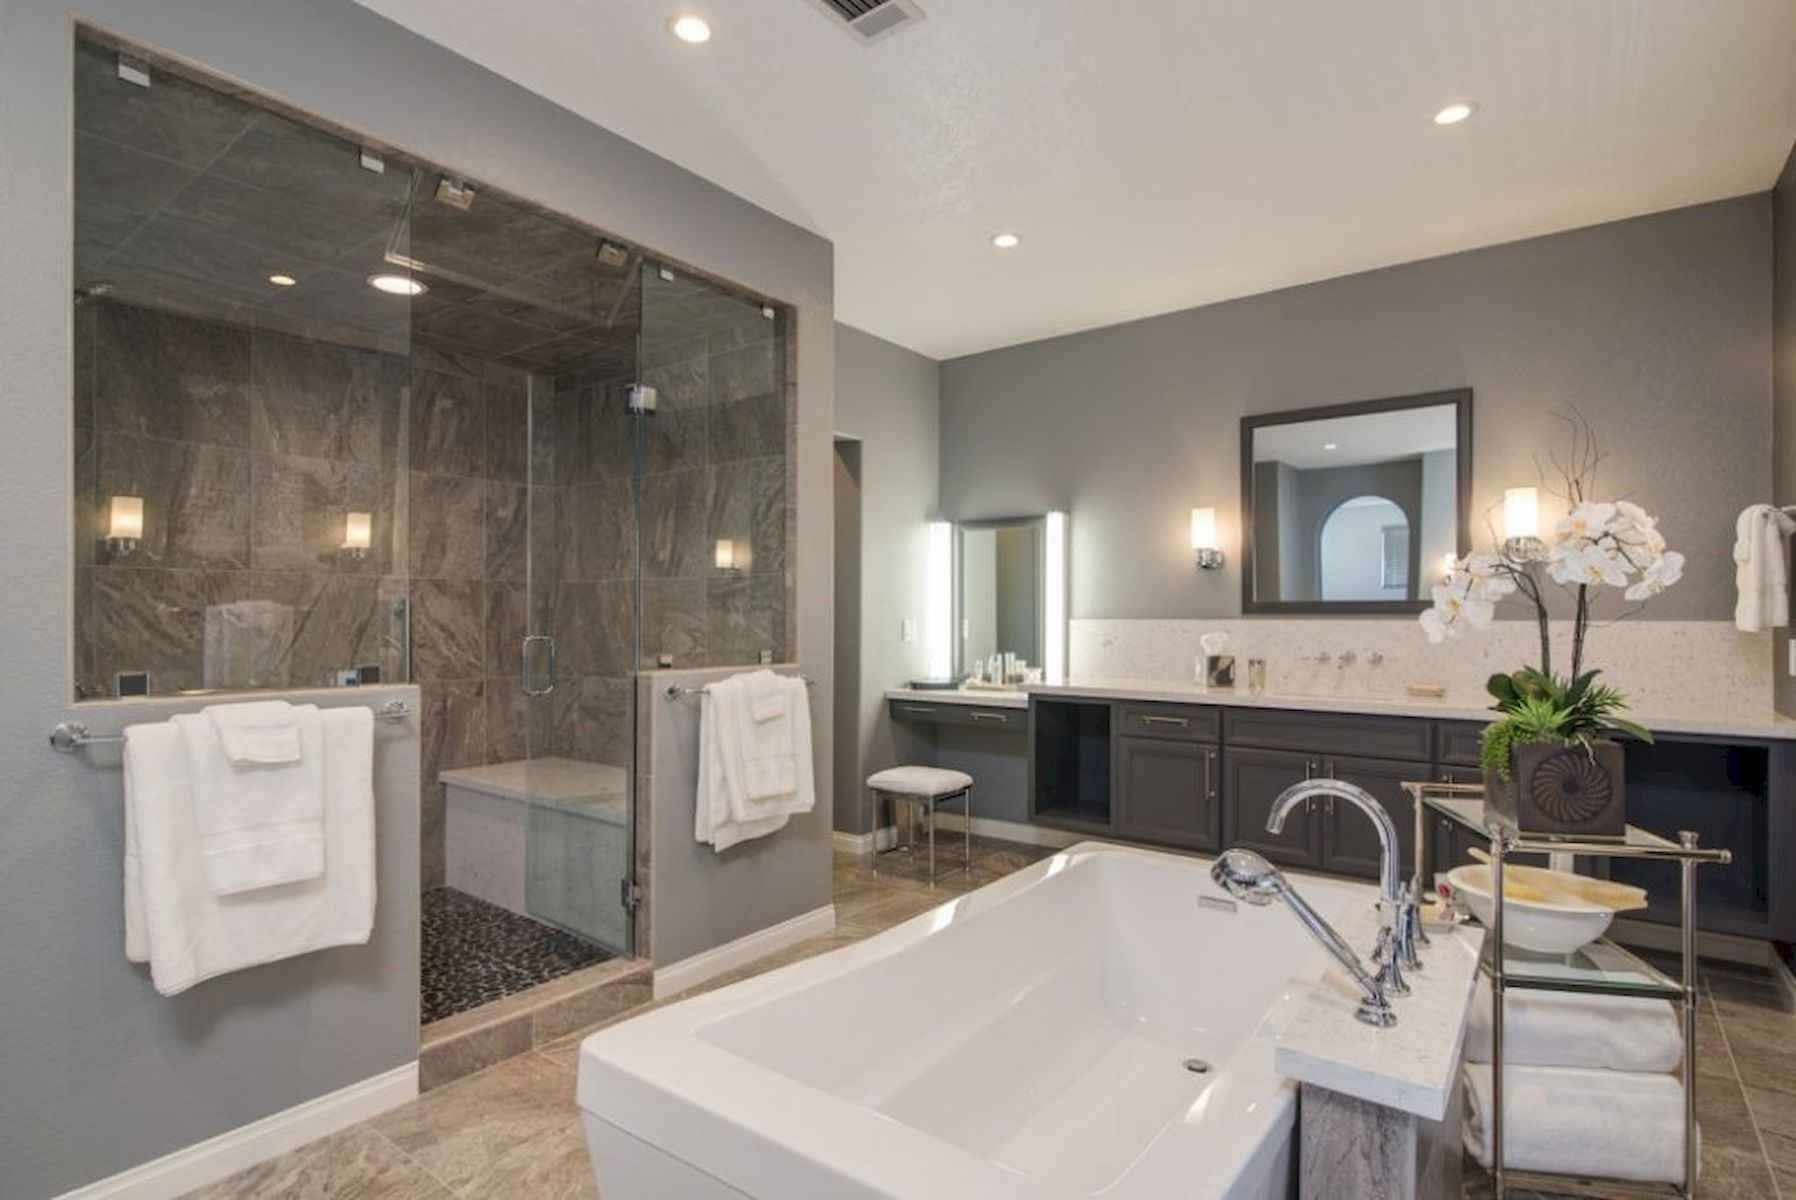 60 Master Bathroom Shower Remodel Ideas In 2020 Small Bathroom Remodel Cost Bathroom Renovation Cost Bathroom Remodel Master